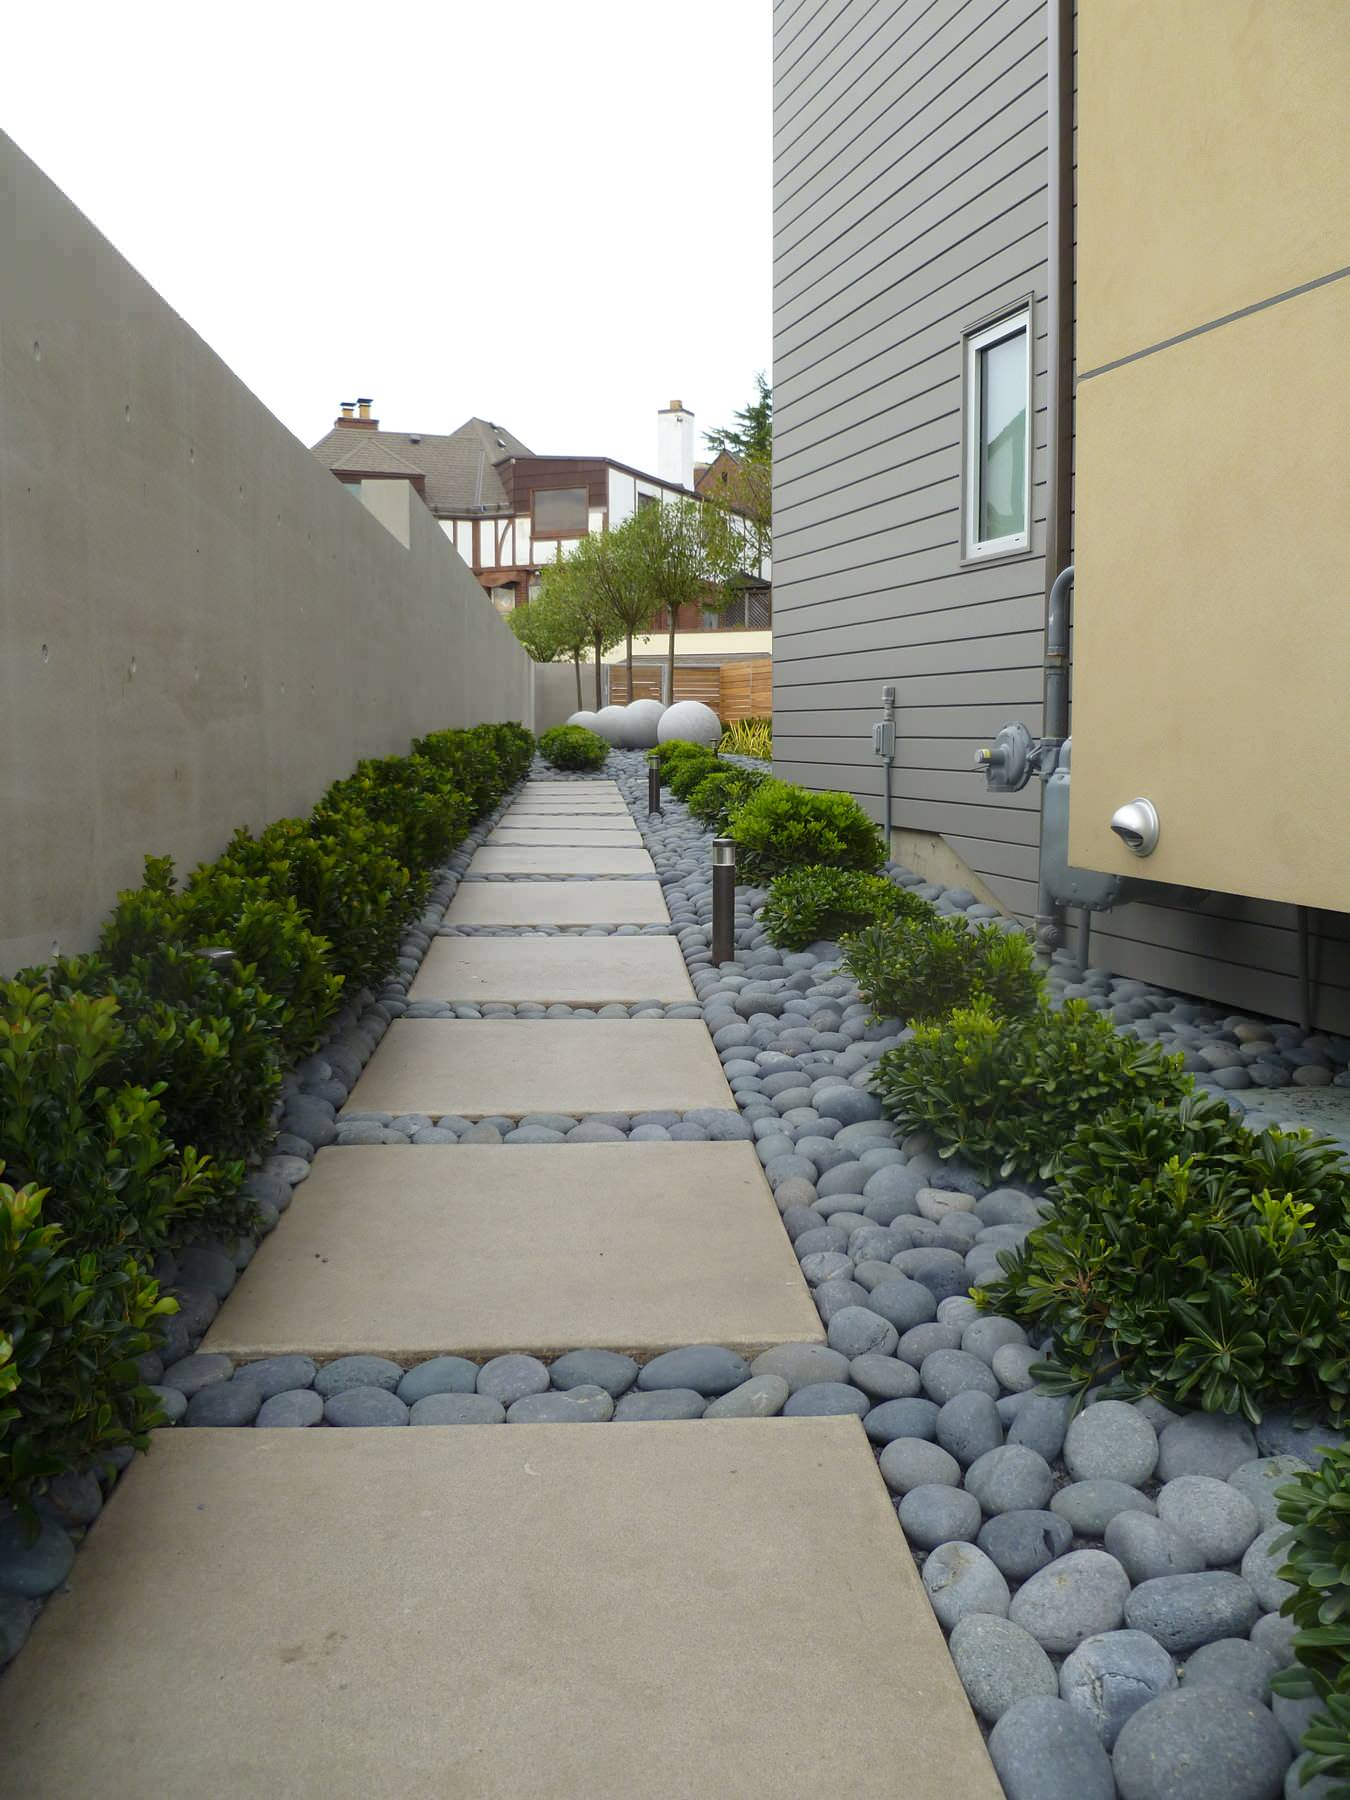 75 Beautiful Side Yard Landscaping Pictures Ideas March 2021 Houzz